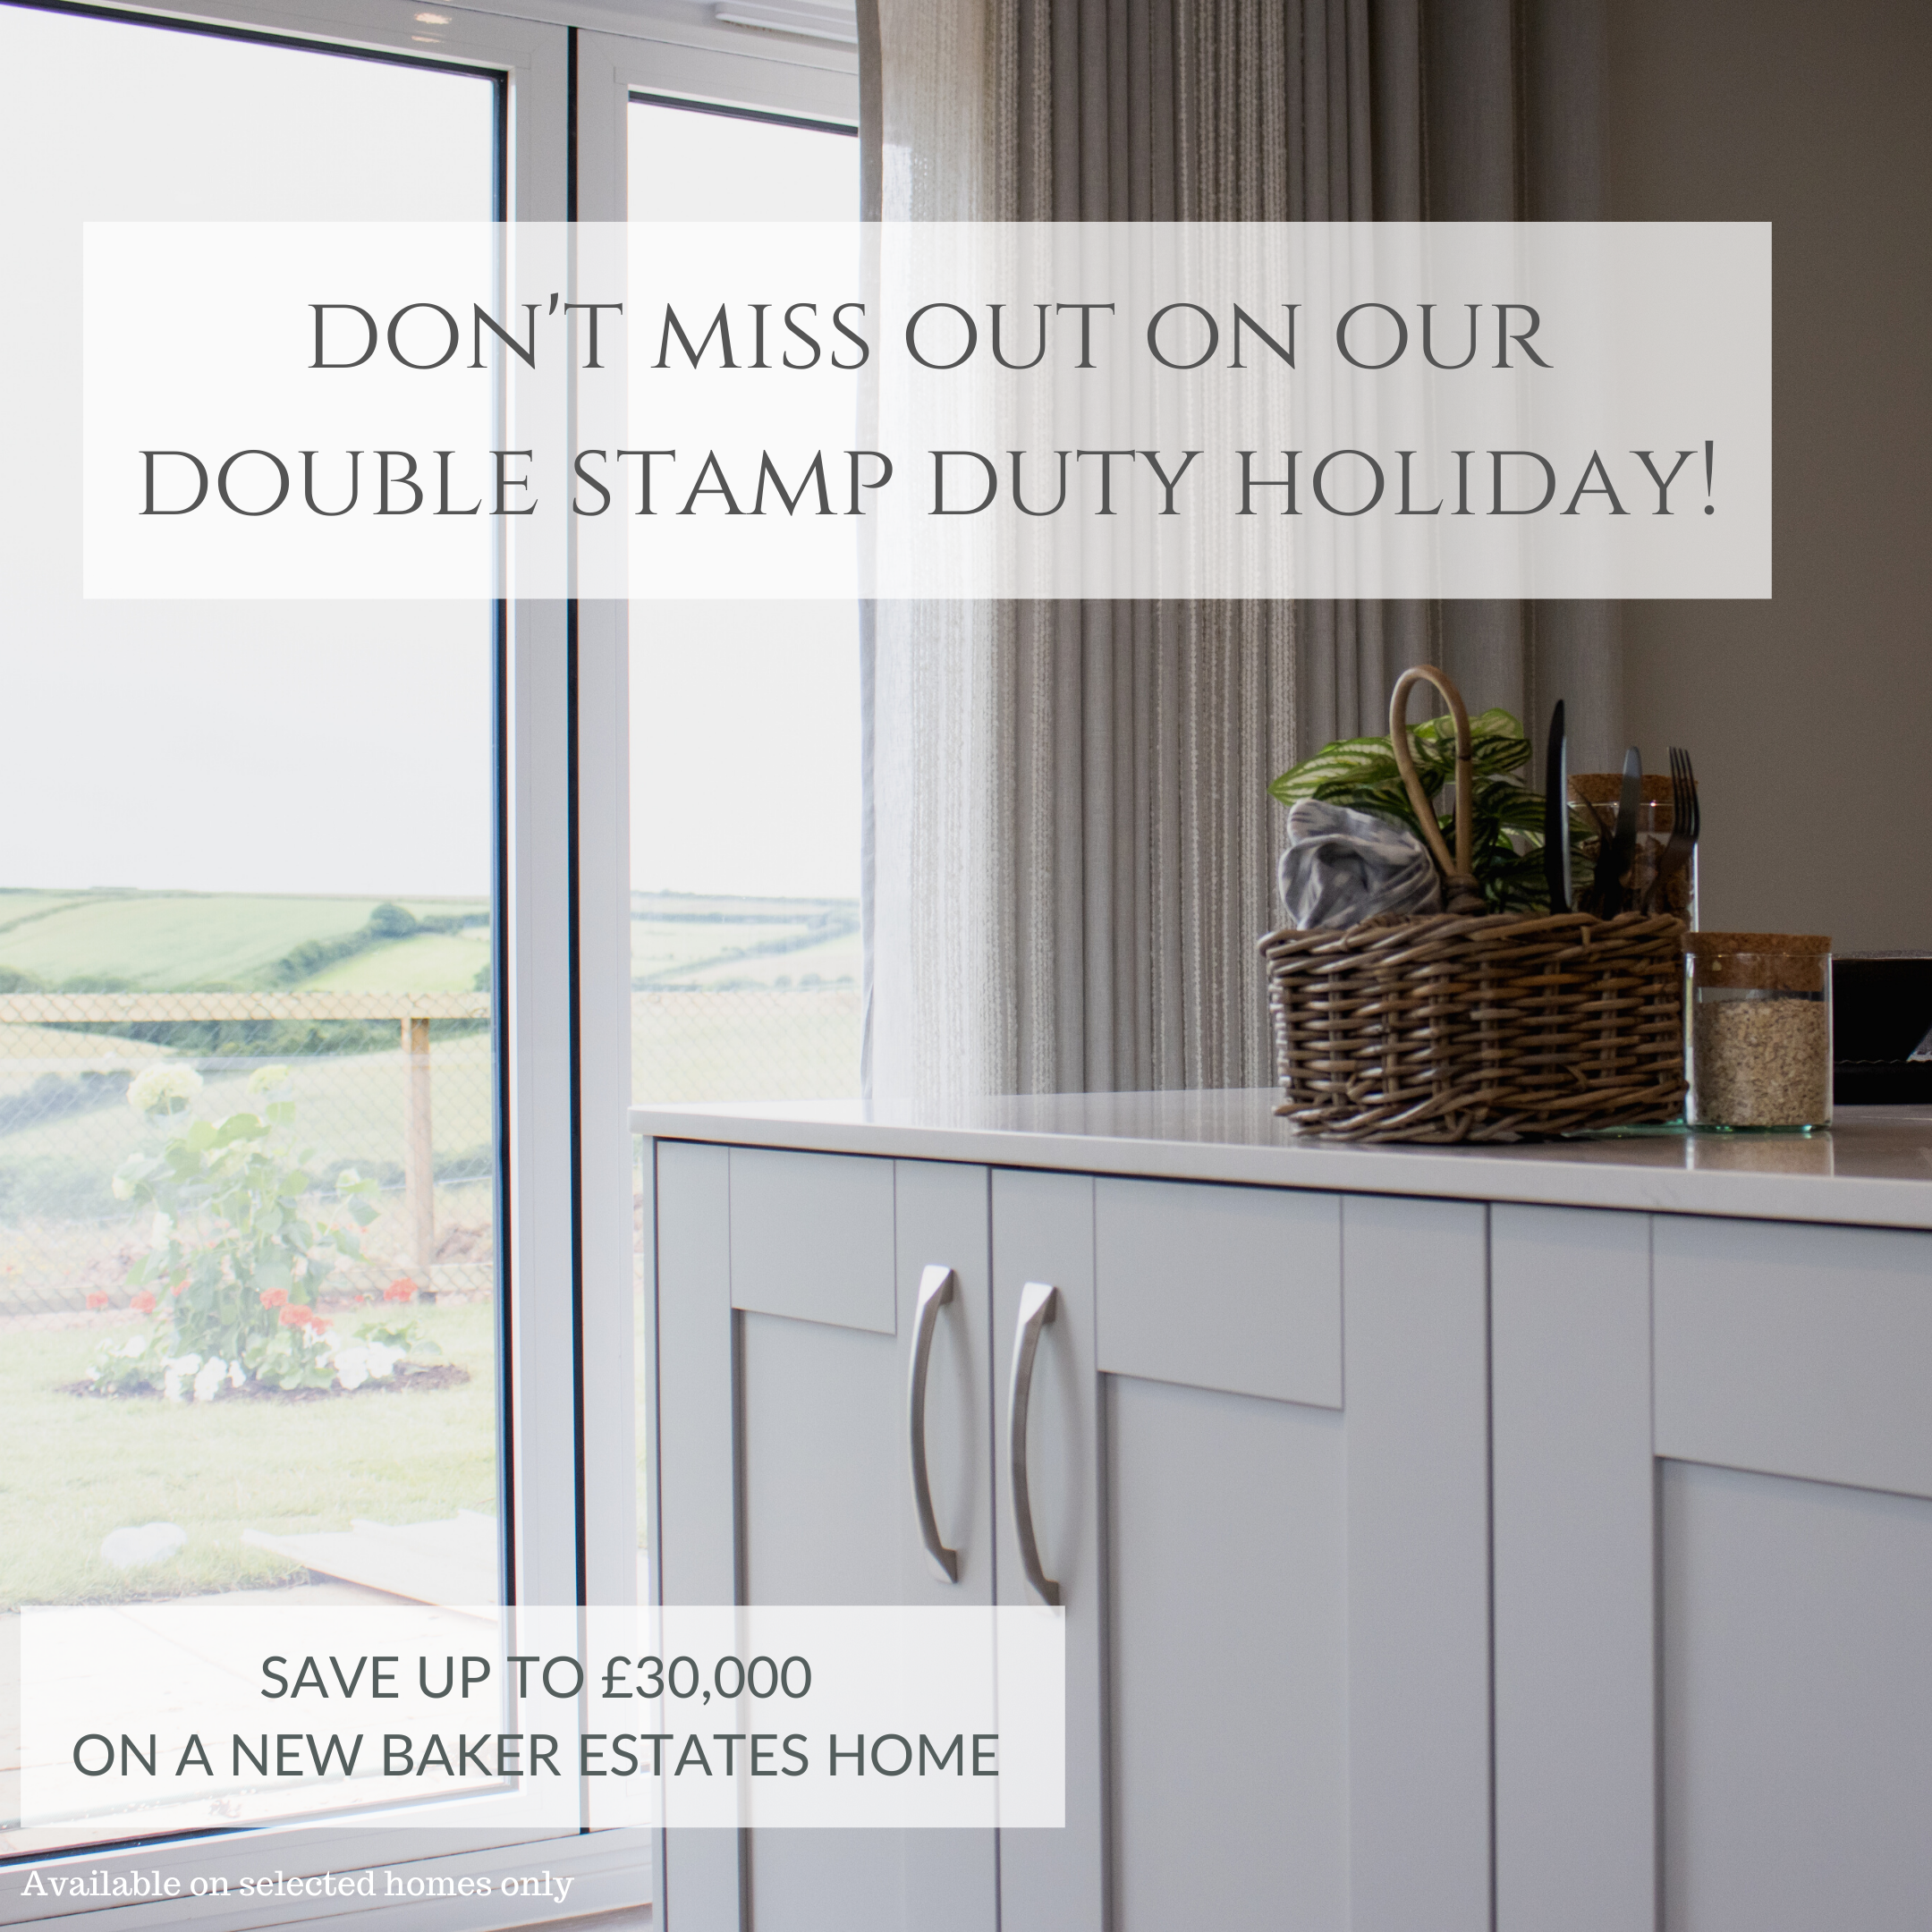 Stamp duty bonus from Baker Estates… as customers can save up to £30,000 on a home